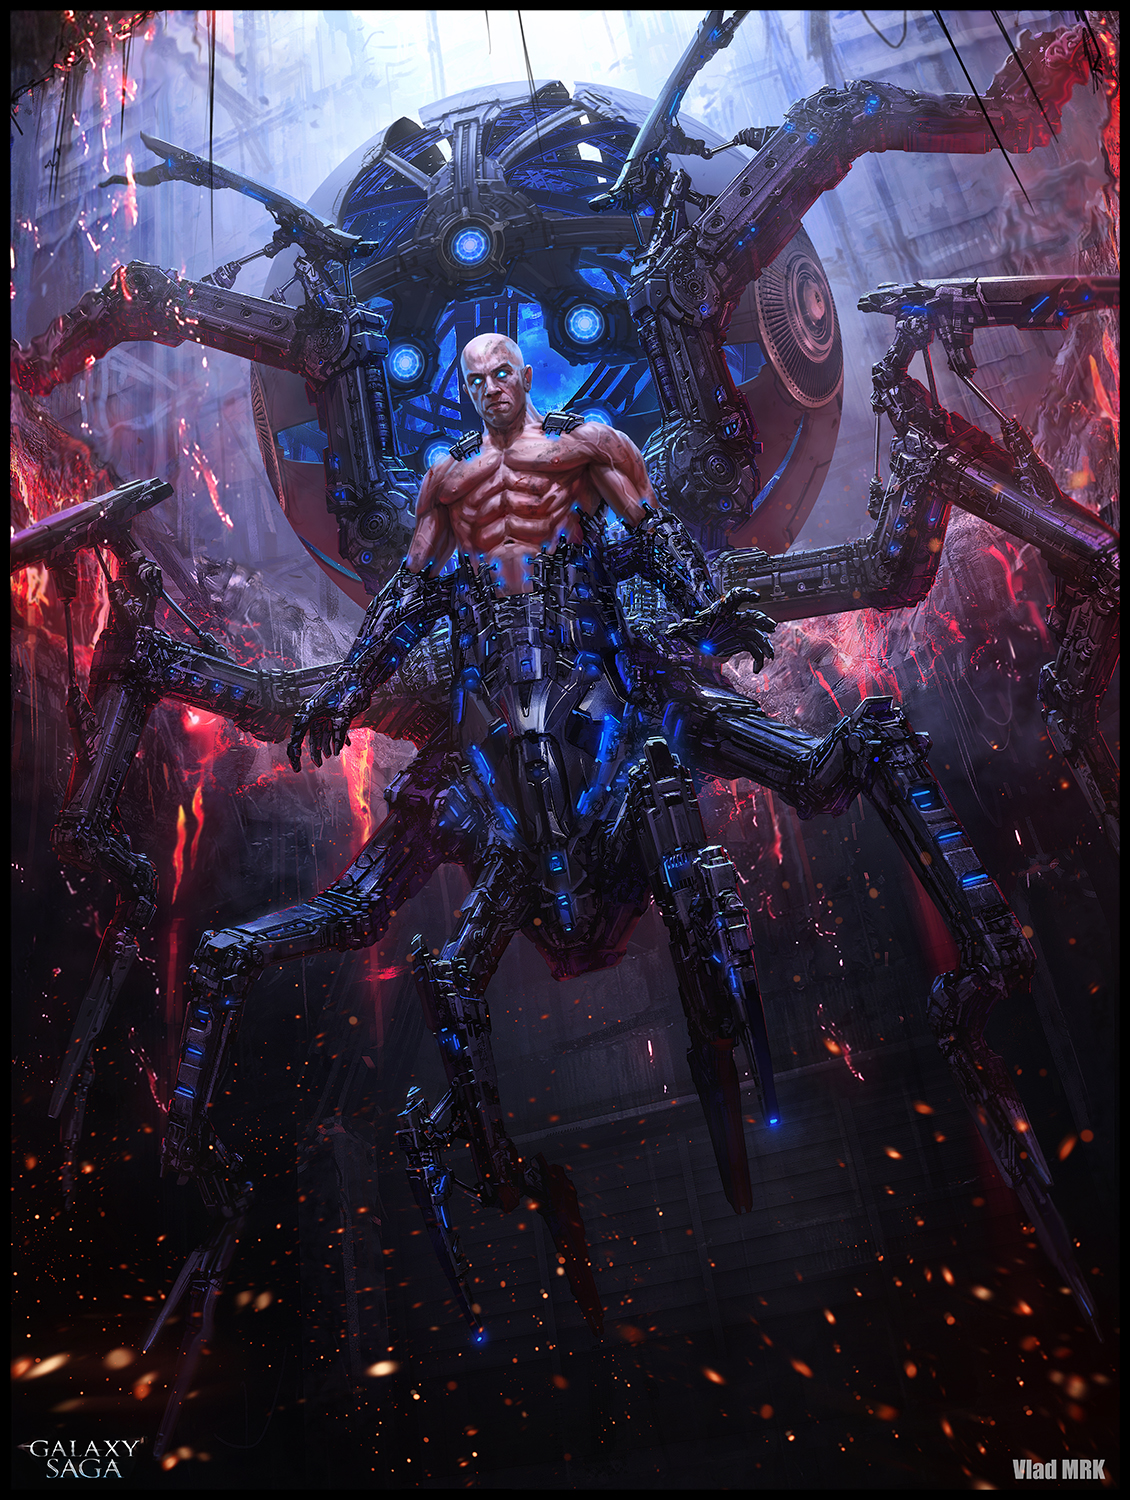 Baal the giant spider - advanced version